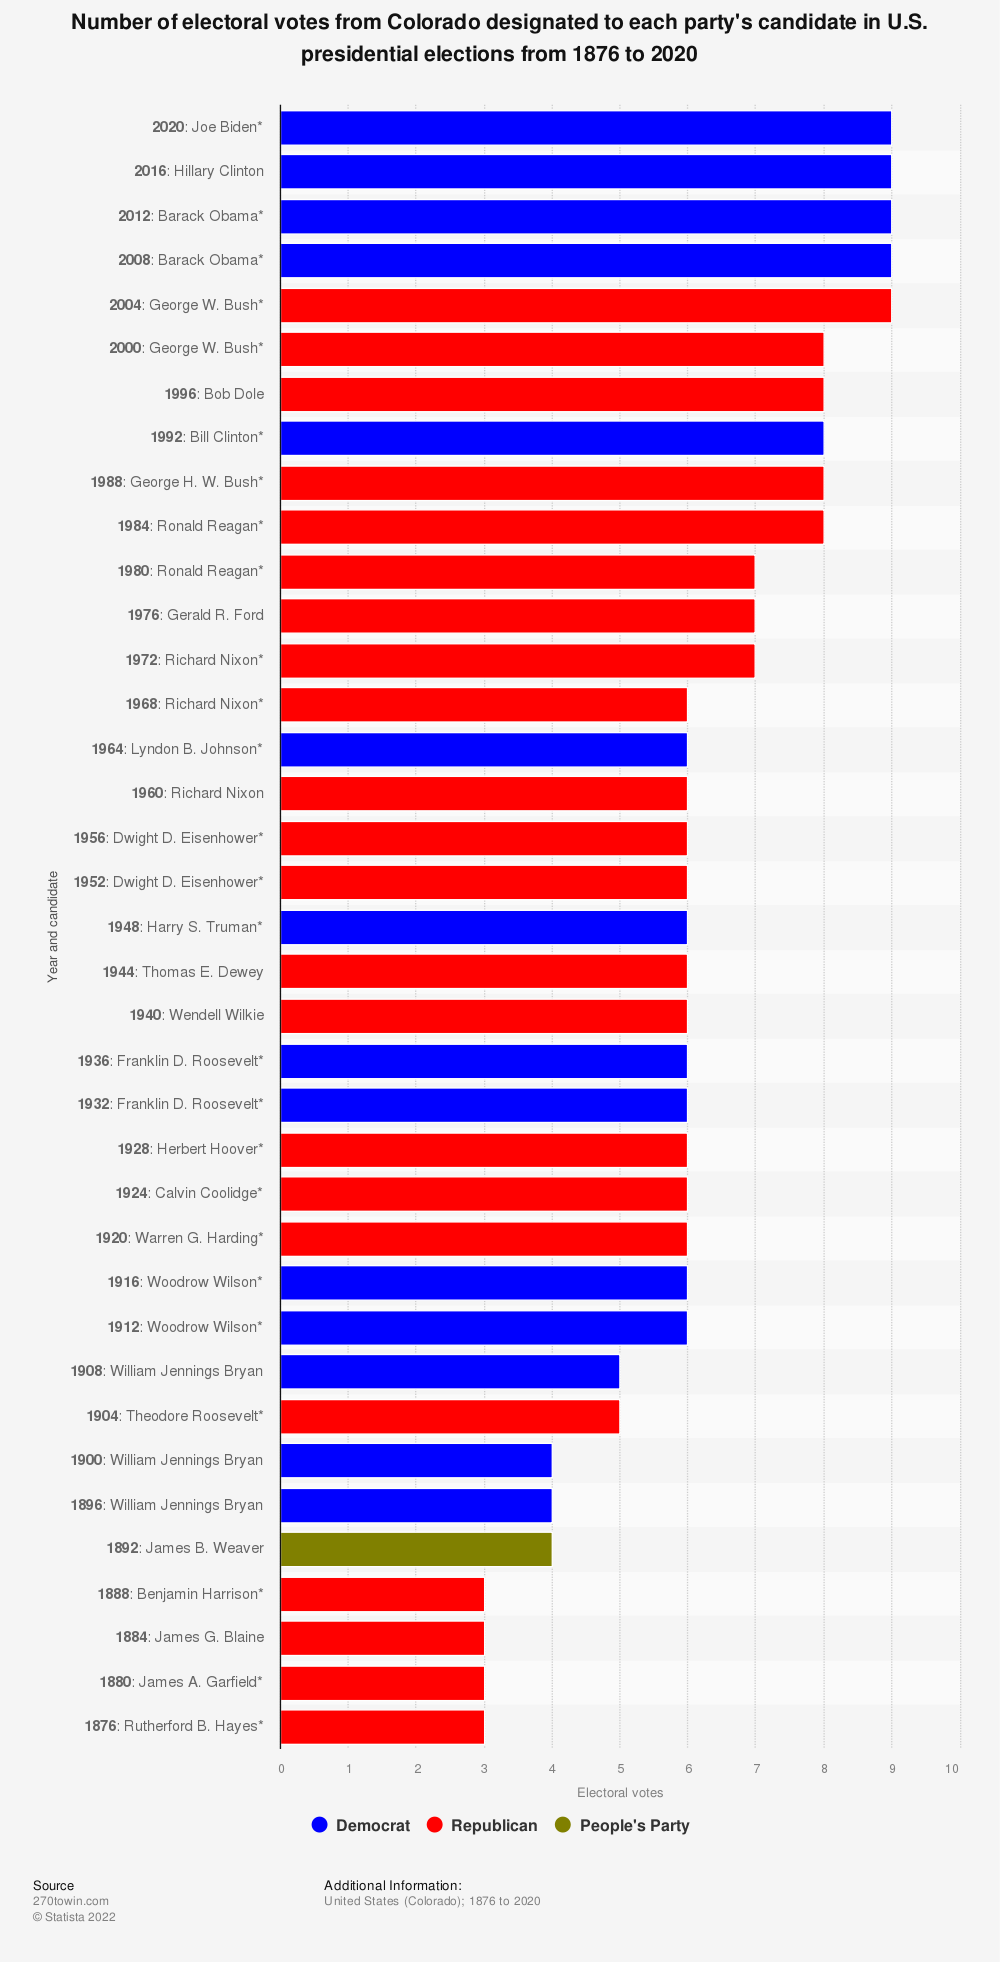 Statistic: Number of electoral votes from Colorado designated to each party's candidate in U.S. presidential elections from 1876 to 2020 | Statista